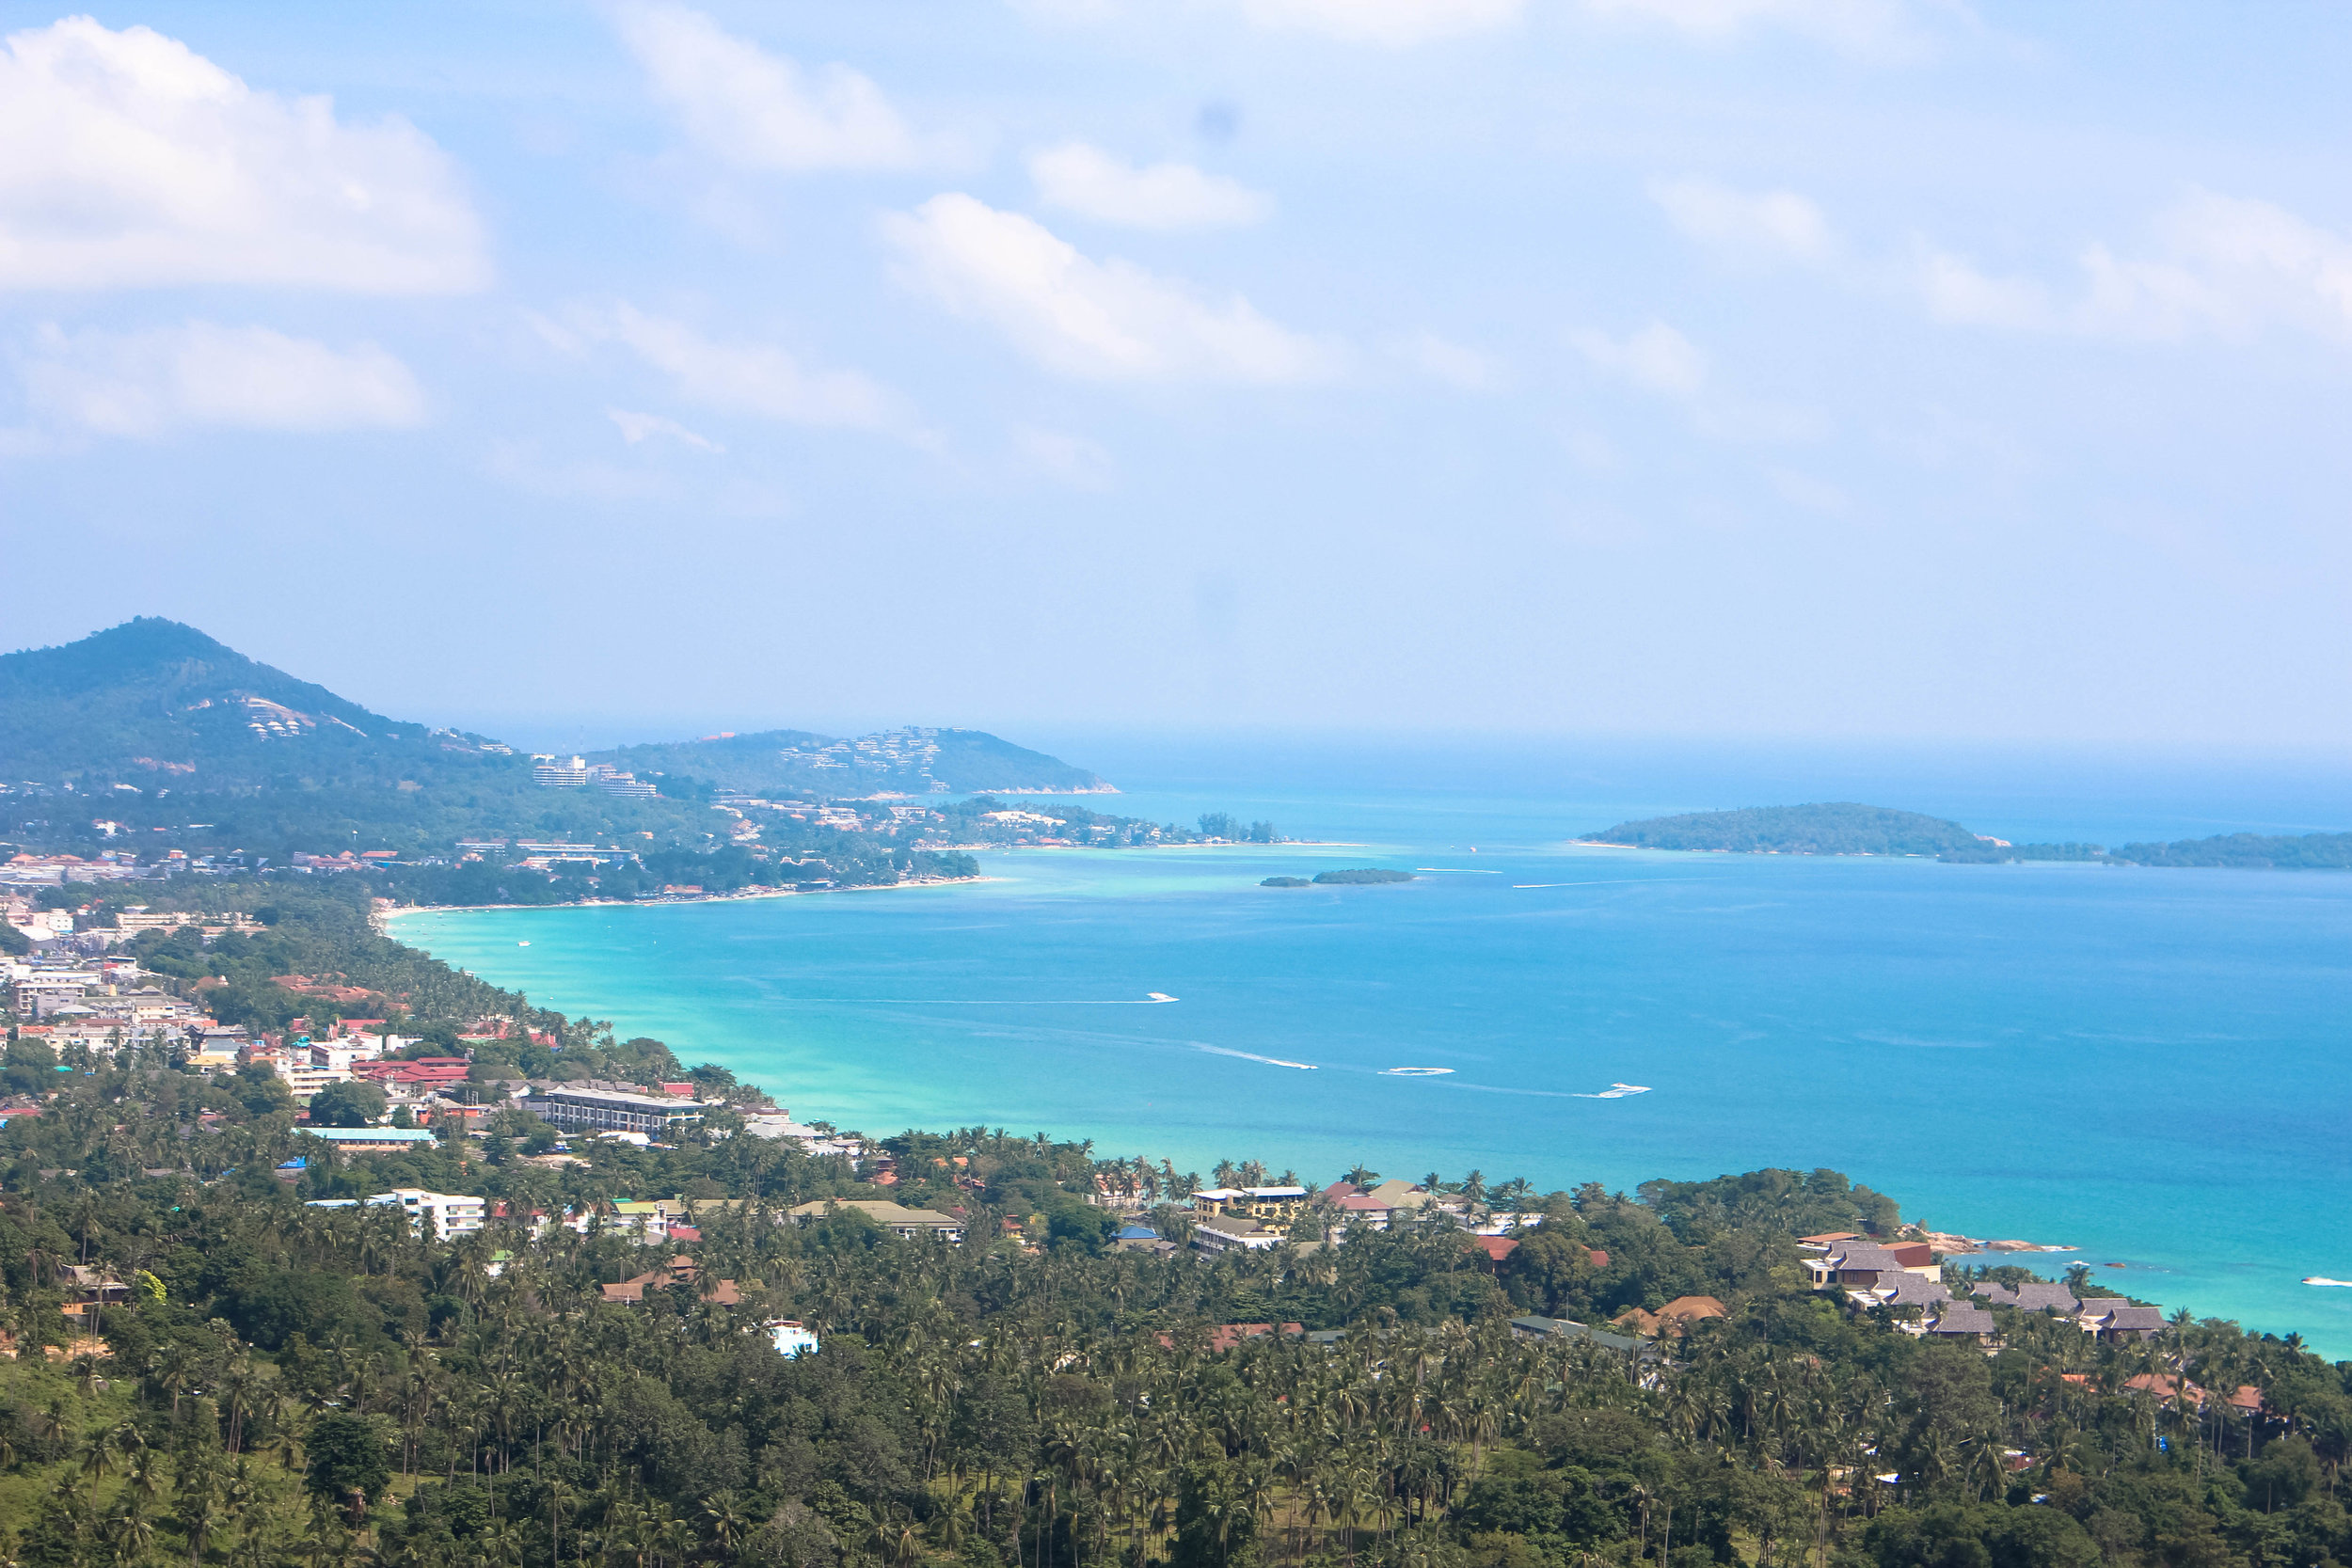 View of Chaweng from Jungle Club Koh Samui